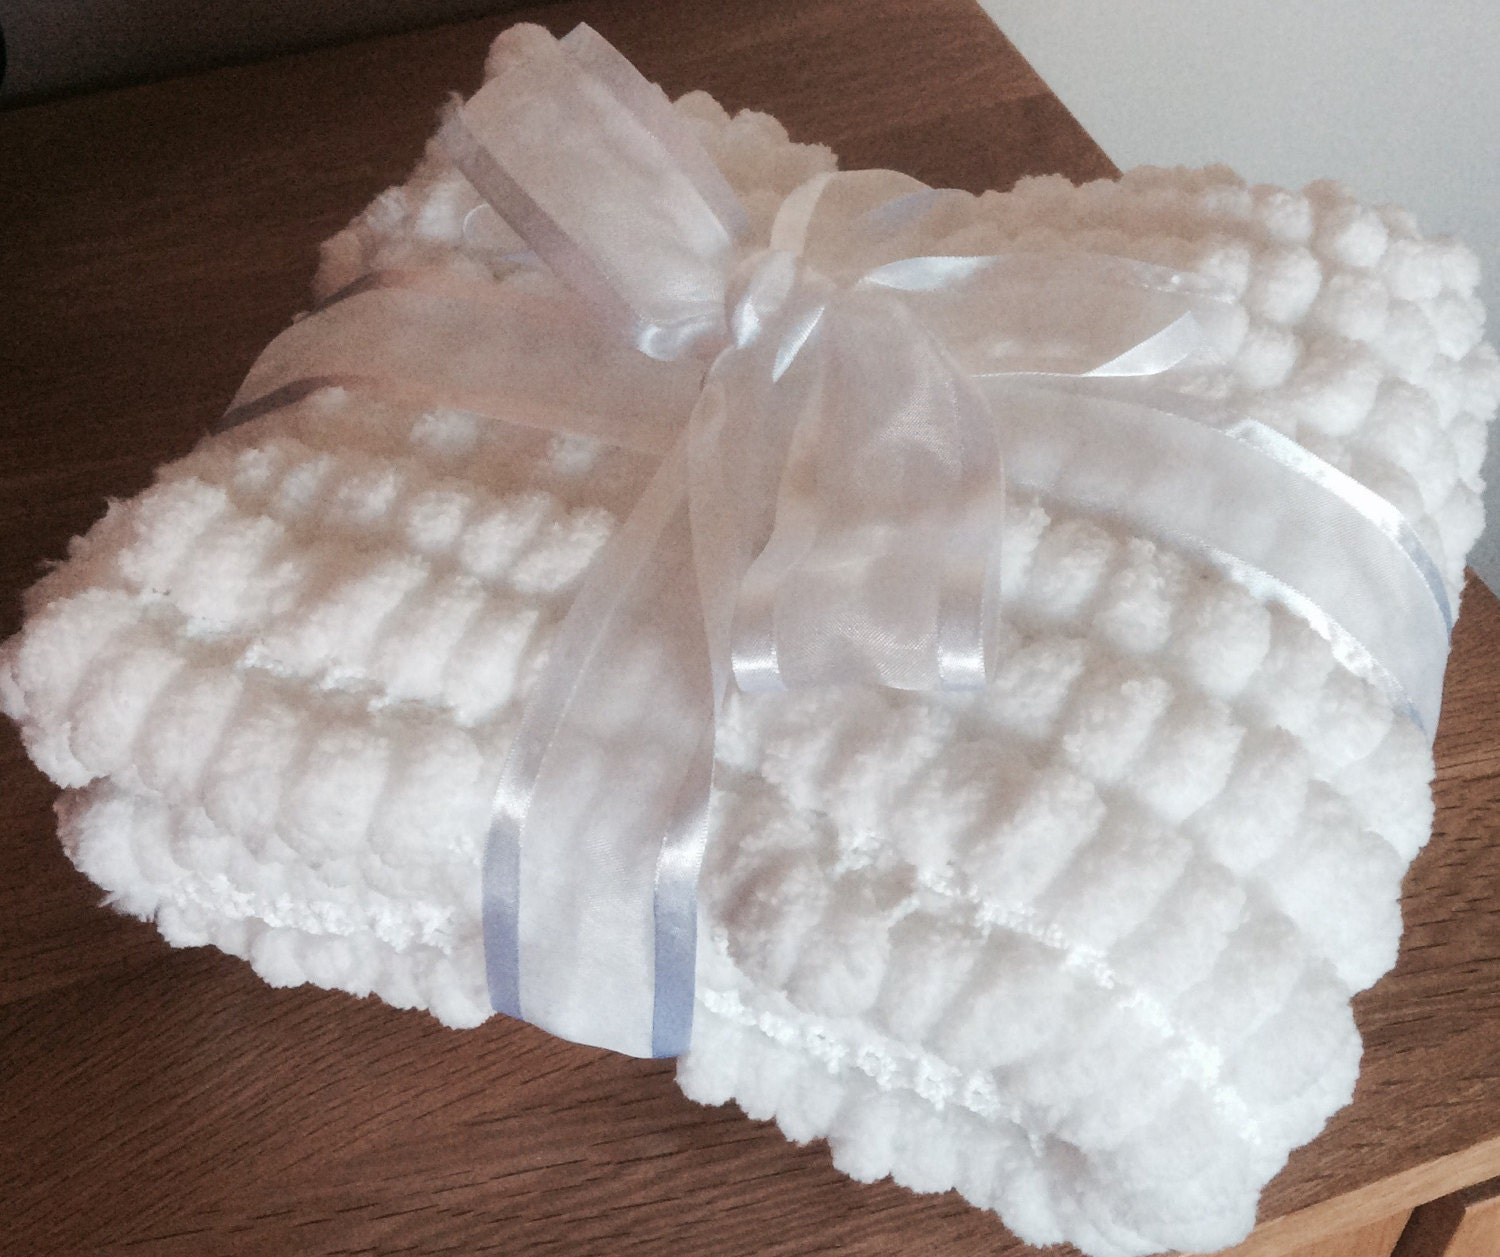 Knitting A Baby Blanket With Pom Pom Wool : Pure white hand knitted pom wool baby blanket pram or